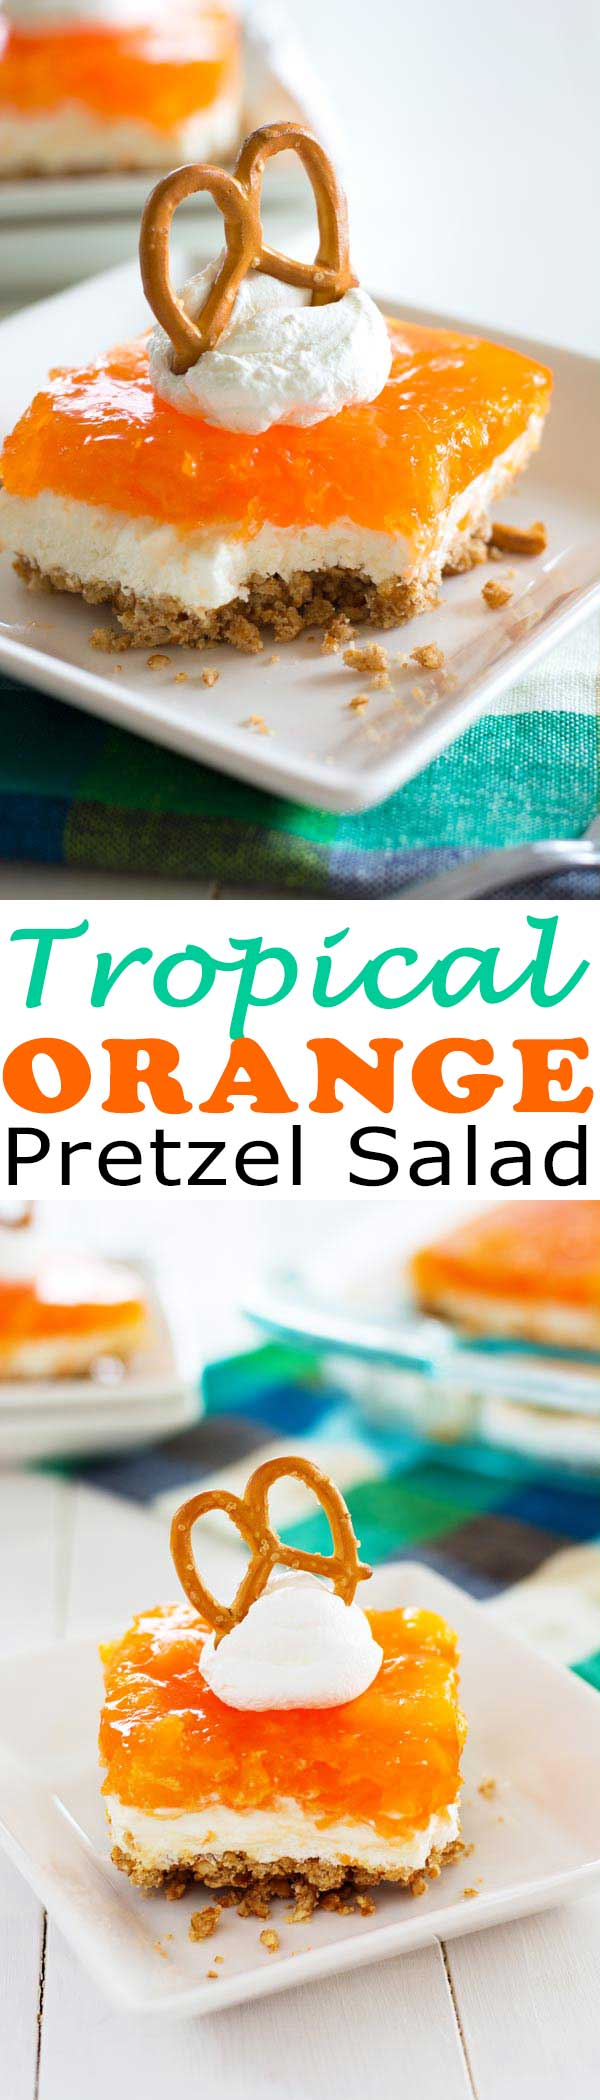 Tropical Orange Pretzel Salad - jello pretzel salad with a pineapple orange twist!